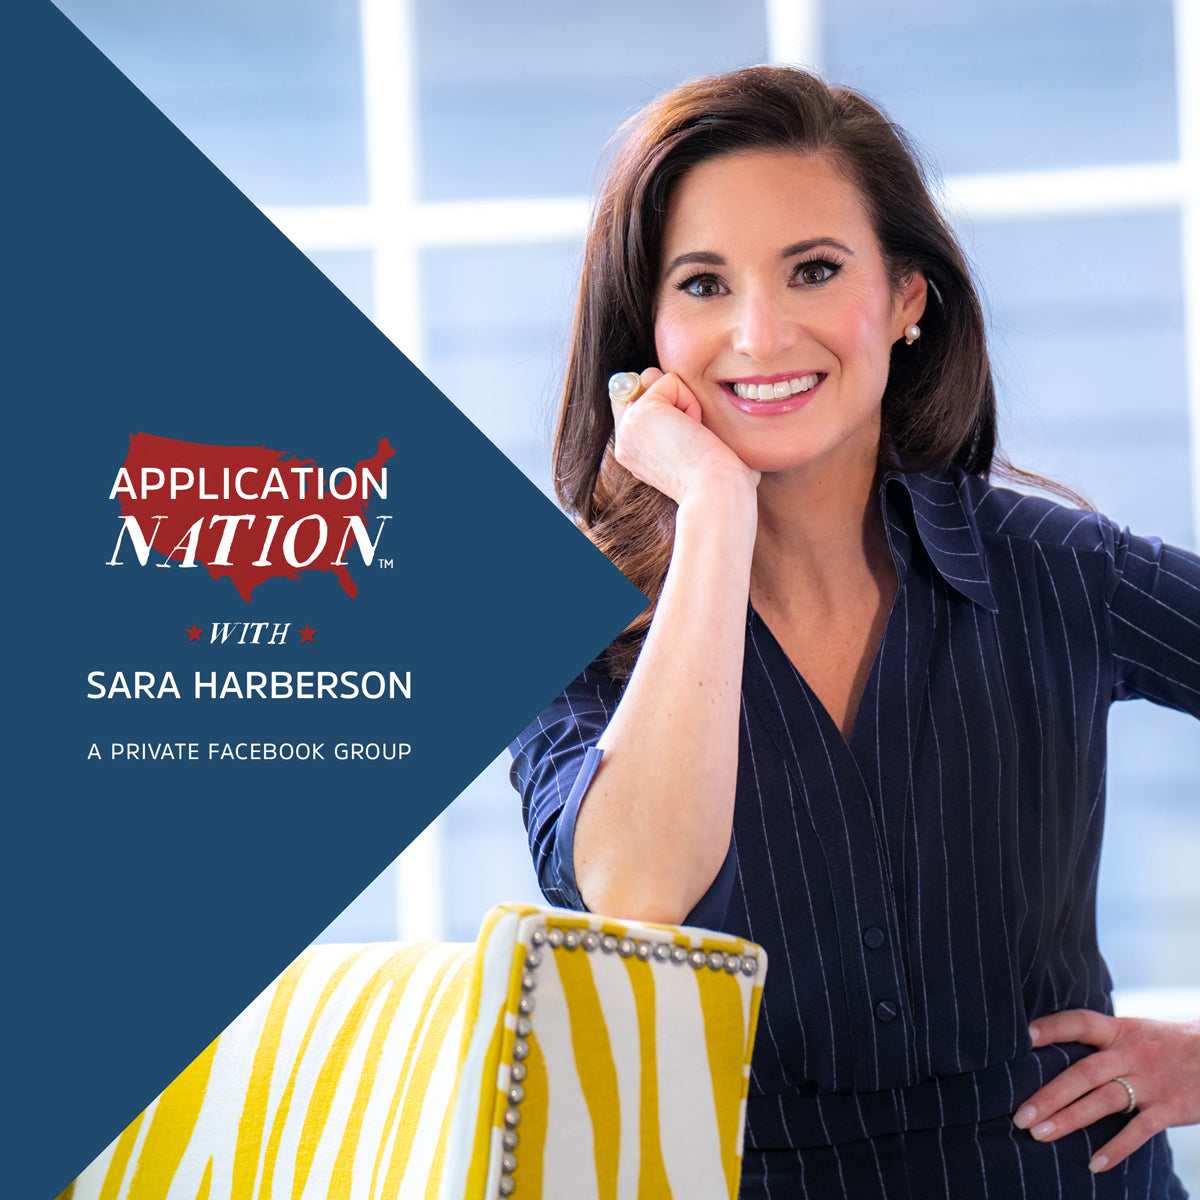 Application Nation™